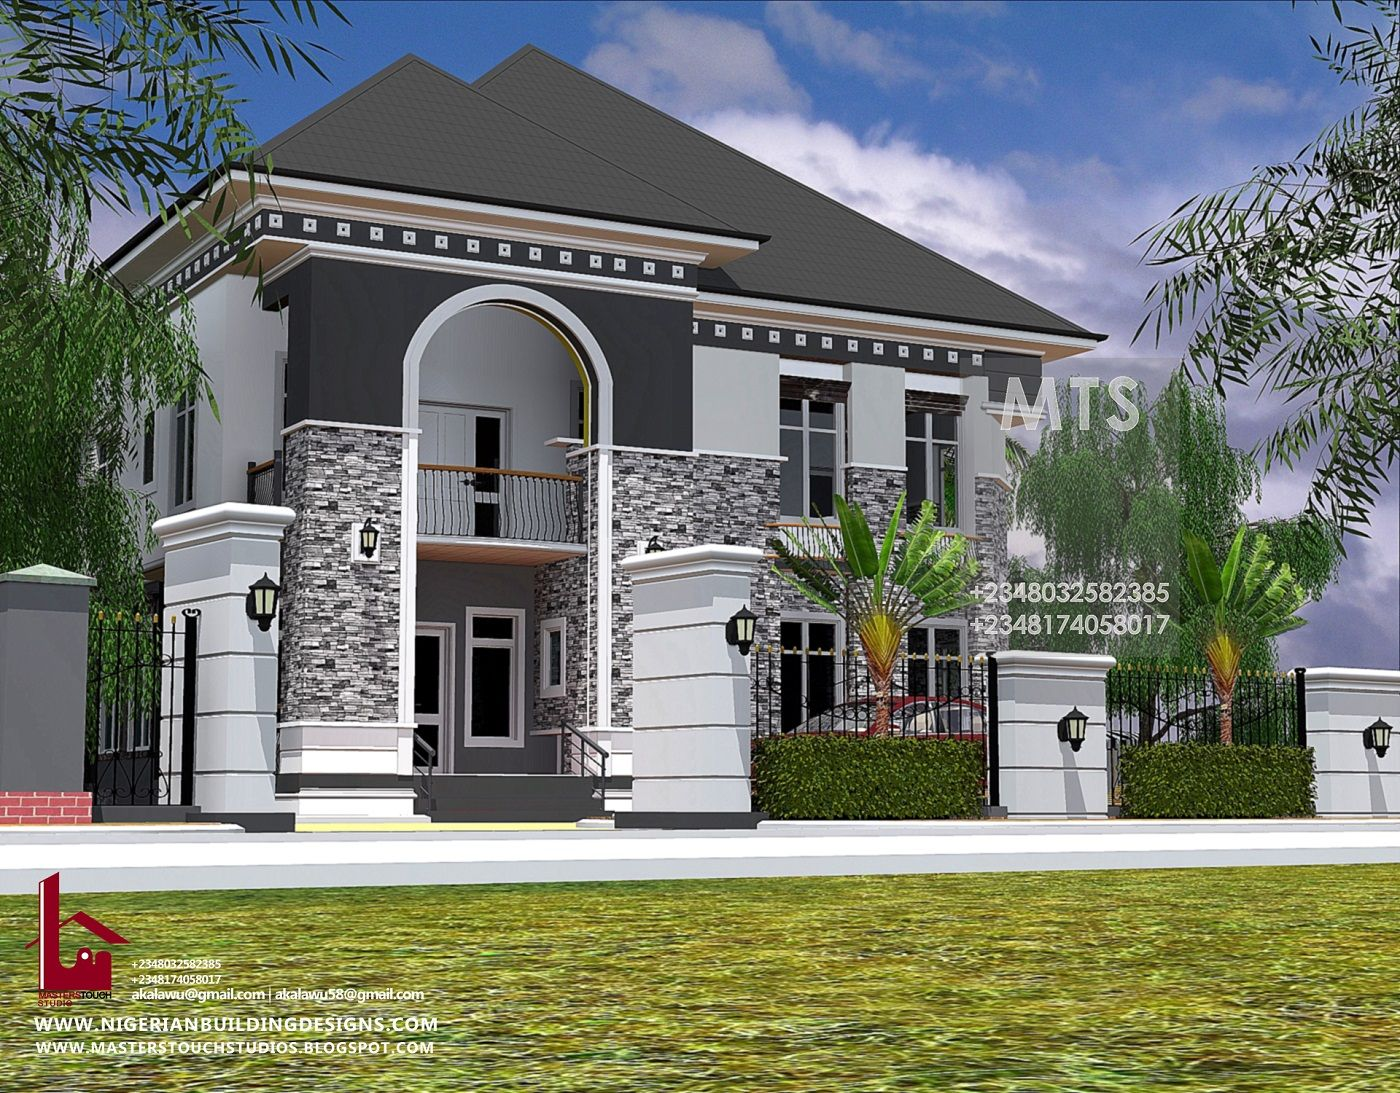 5 Bedroom Duplex Rf D5006 Beautiful House Plans Architectural House Plans Duplex Design